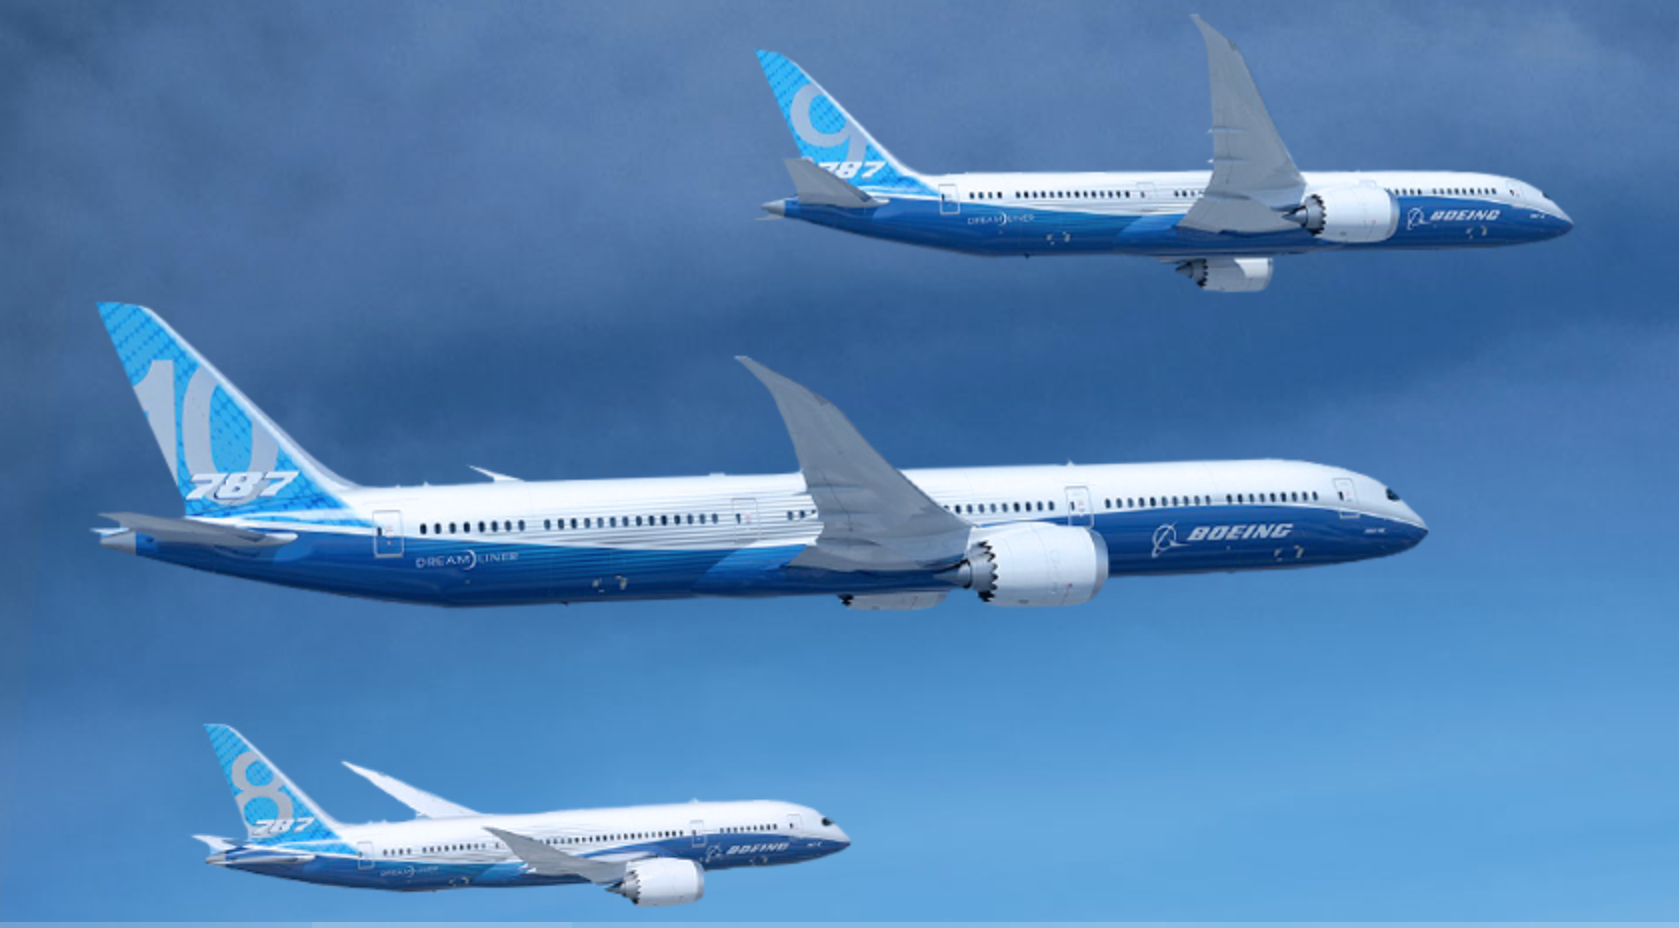 Boeing 787 Series Aircraft Comparison